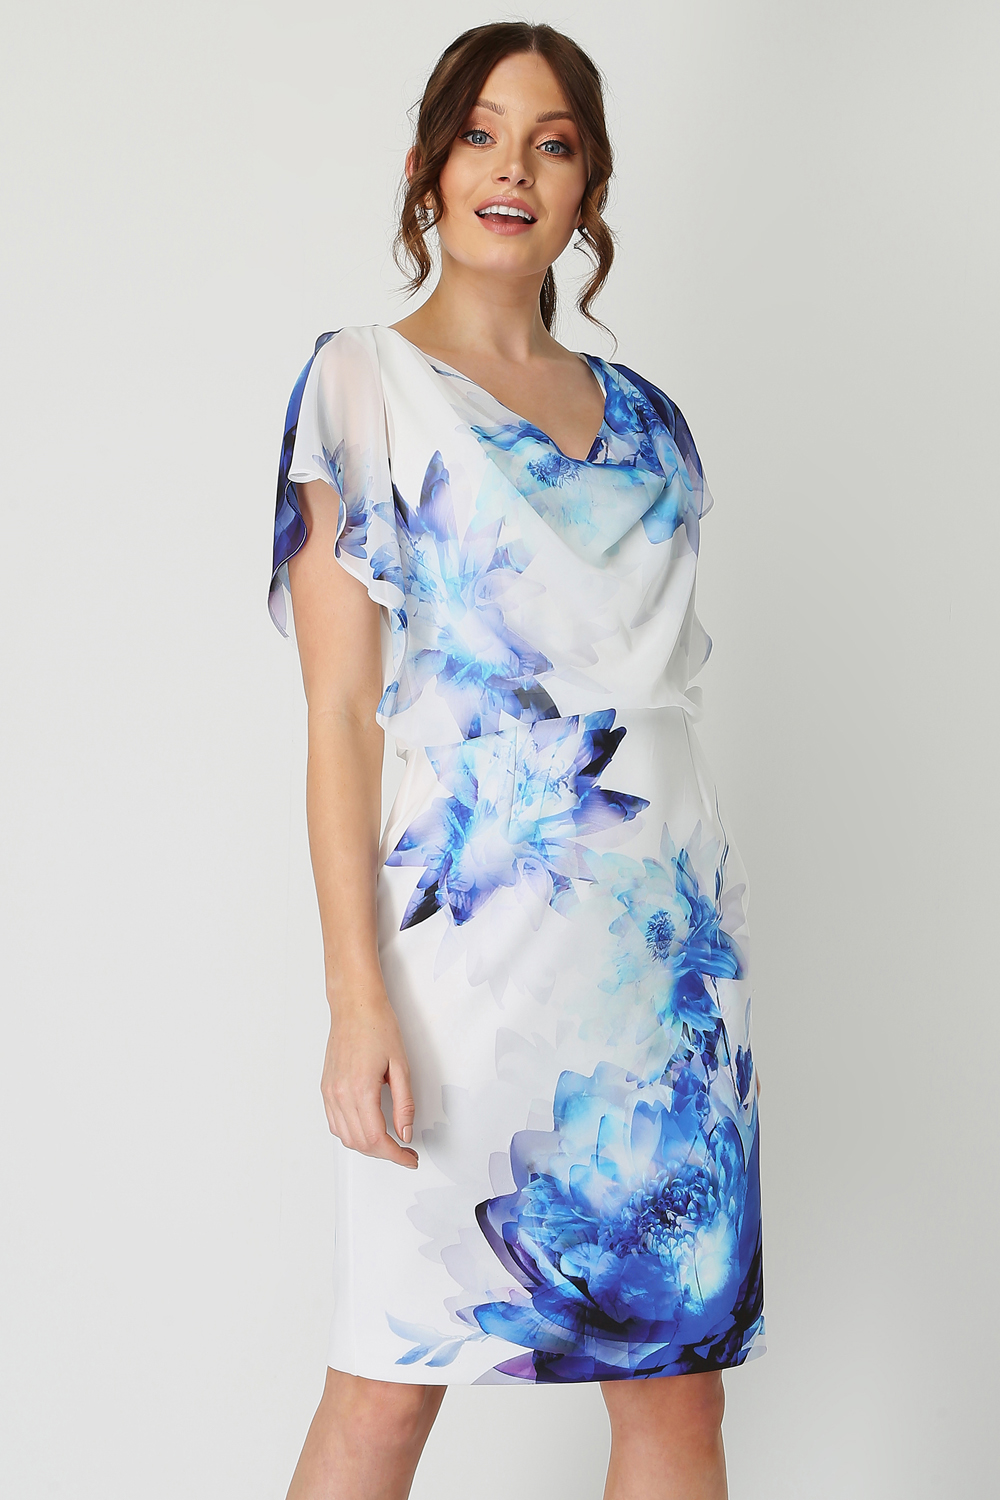 Roman-Originals-Chiffon-Overlay-Scuba-Dress thumbnail 8